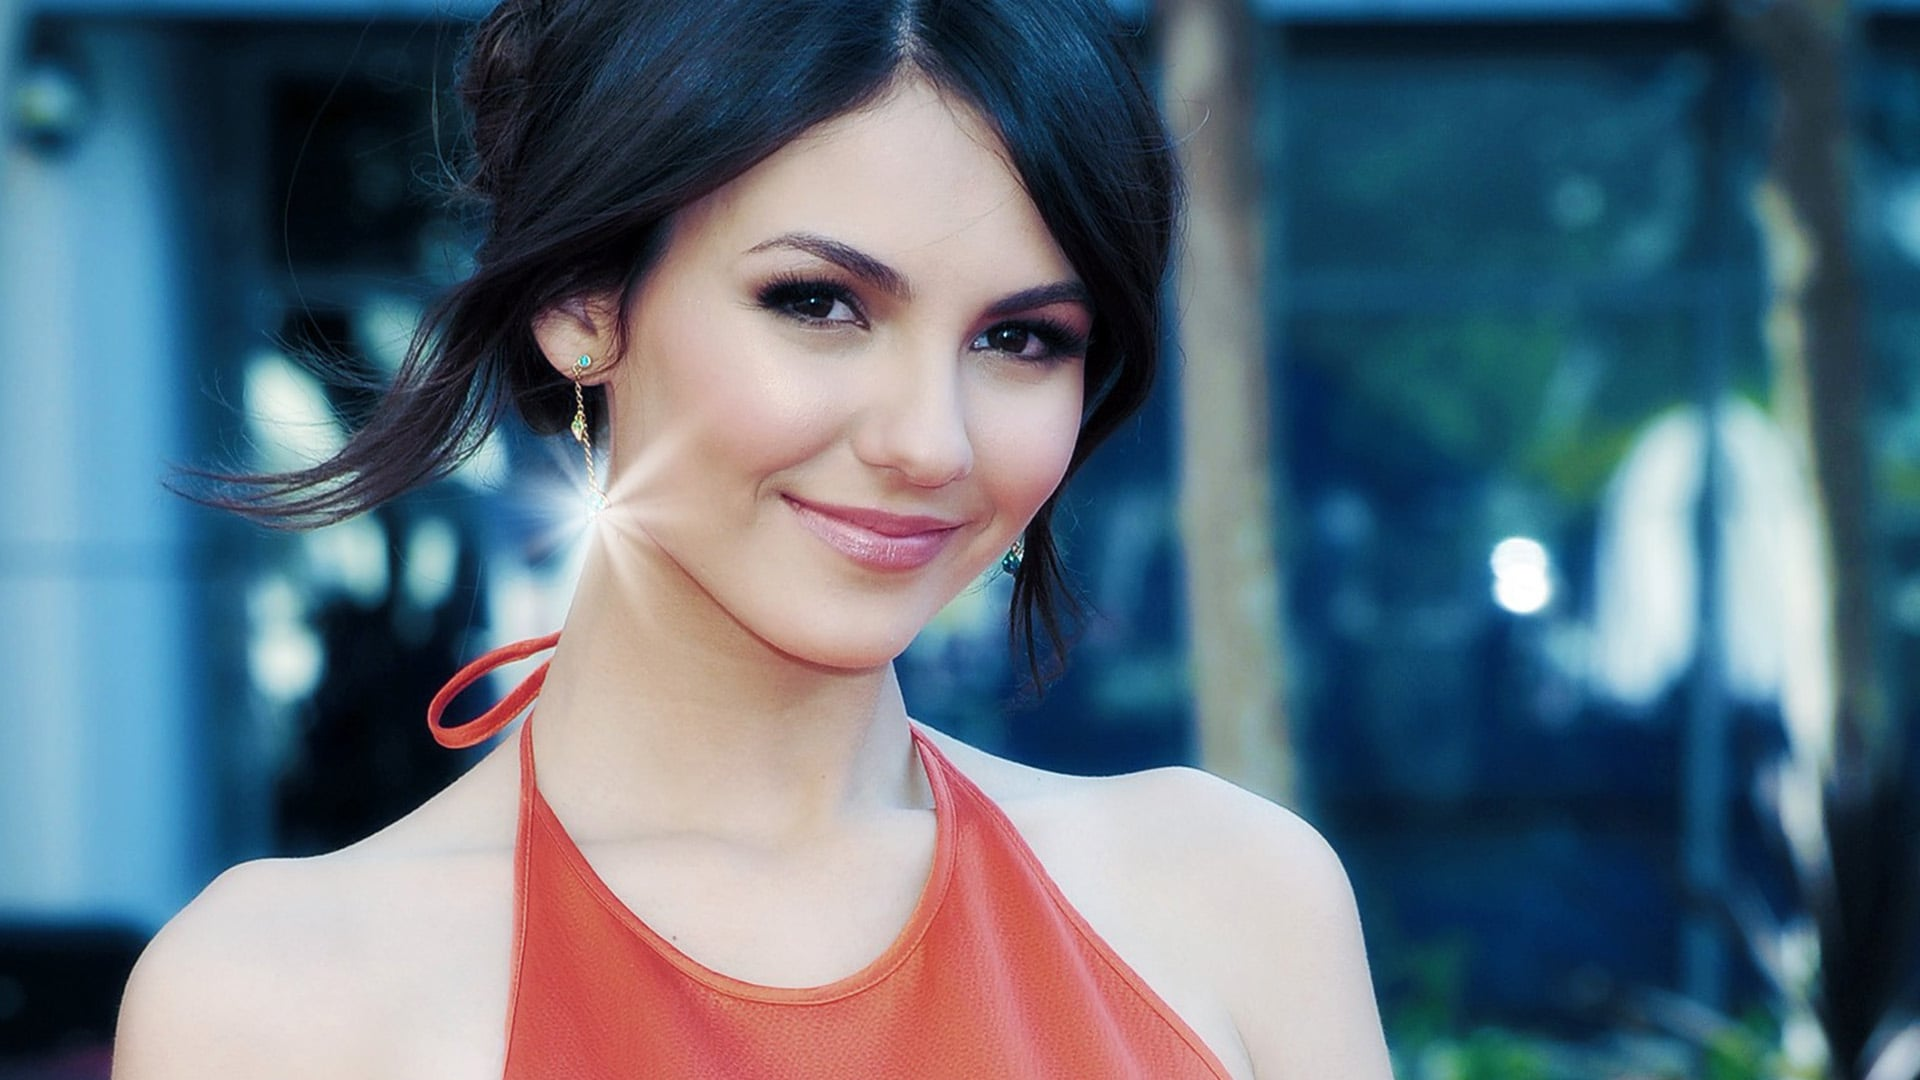 Wallpaper of Victoria Justice for iPad